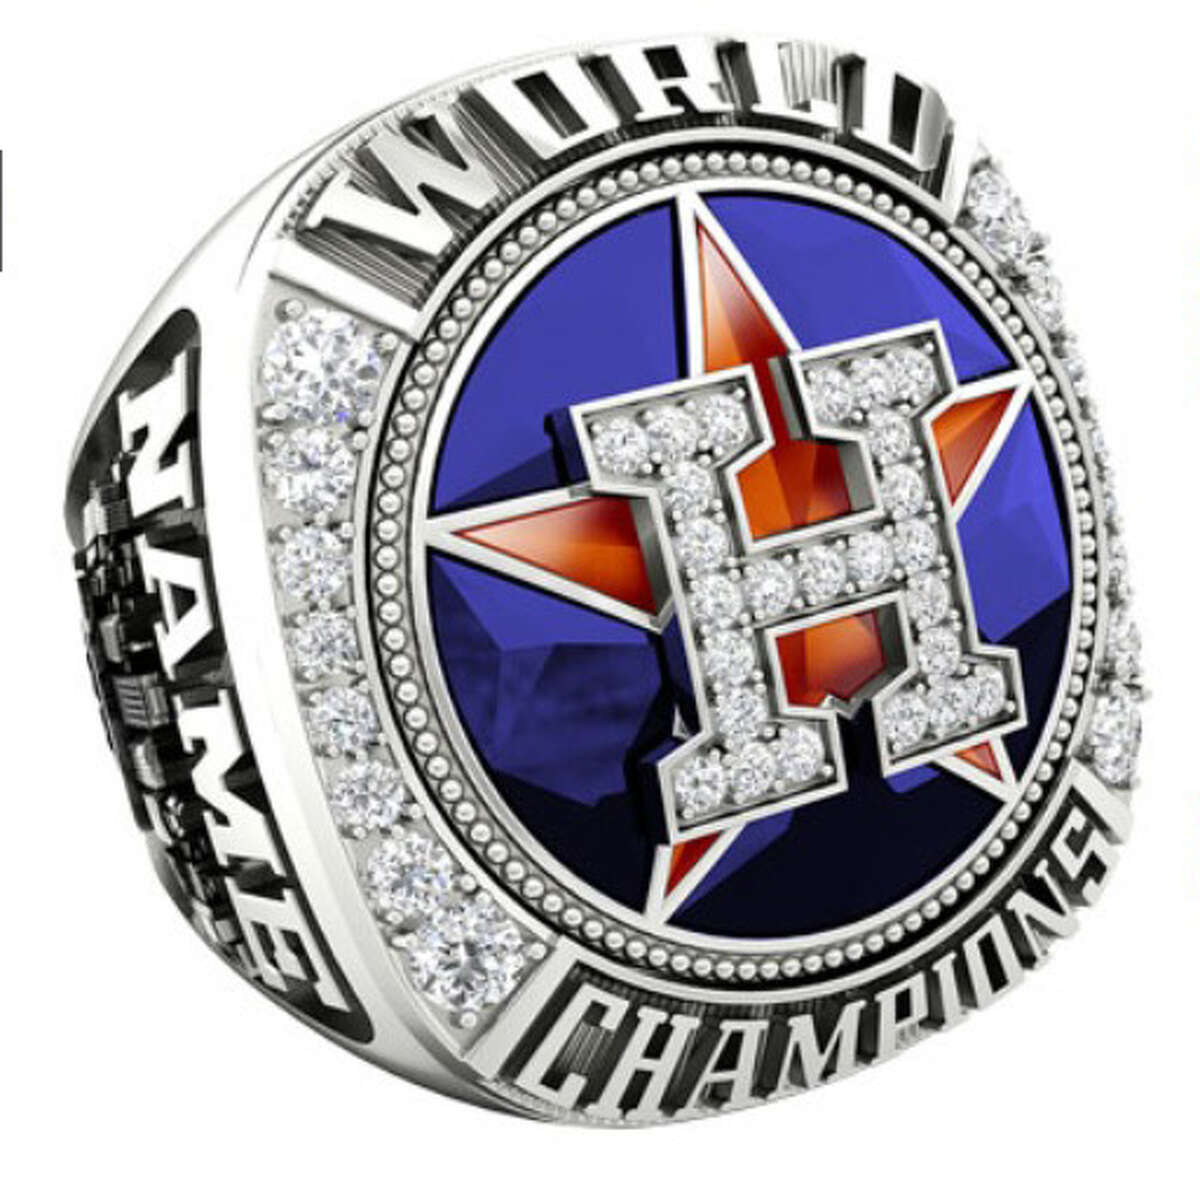 JOSTENS' ASTROS WORLD SERIES JEWELRY COLLECTION Astros' elite fan ring $649